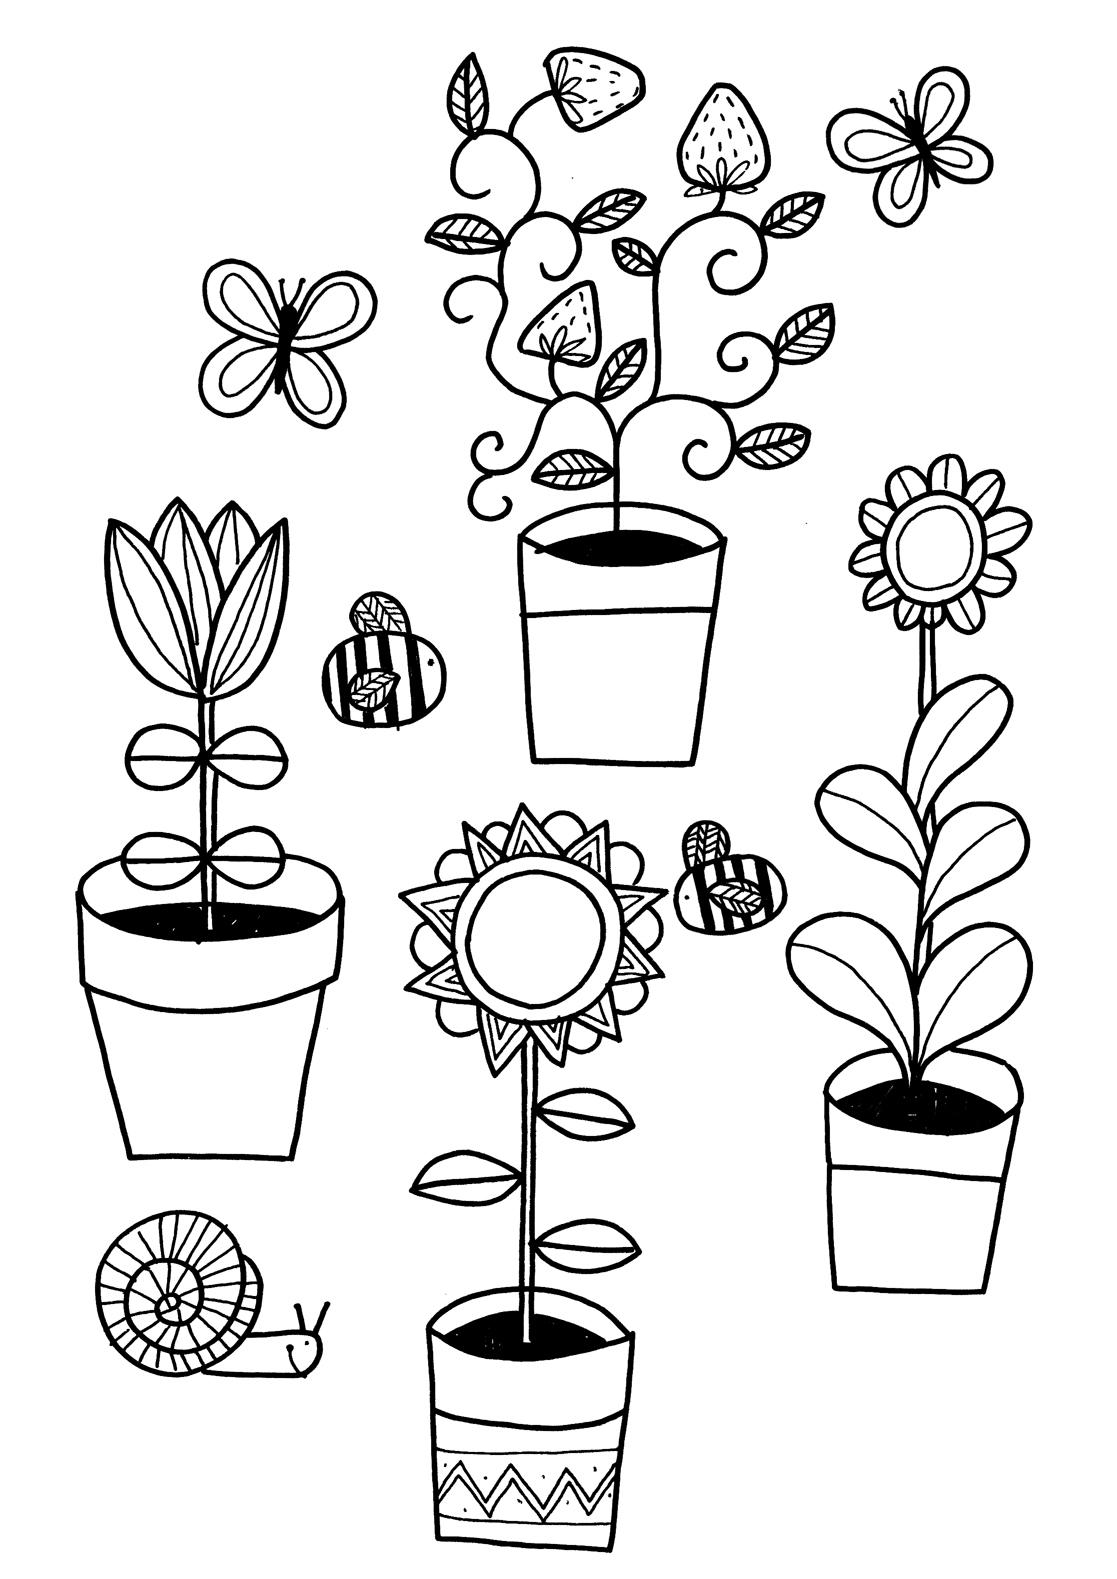 coloring pages seeds and plants - photo #40